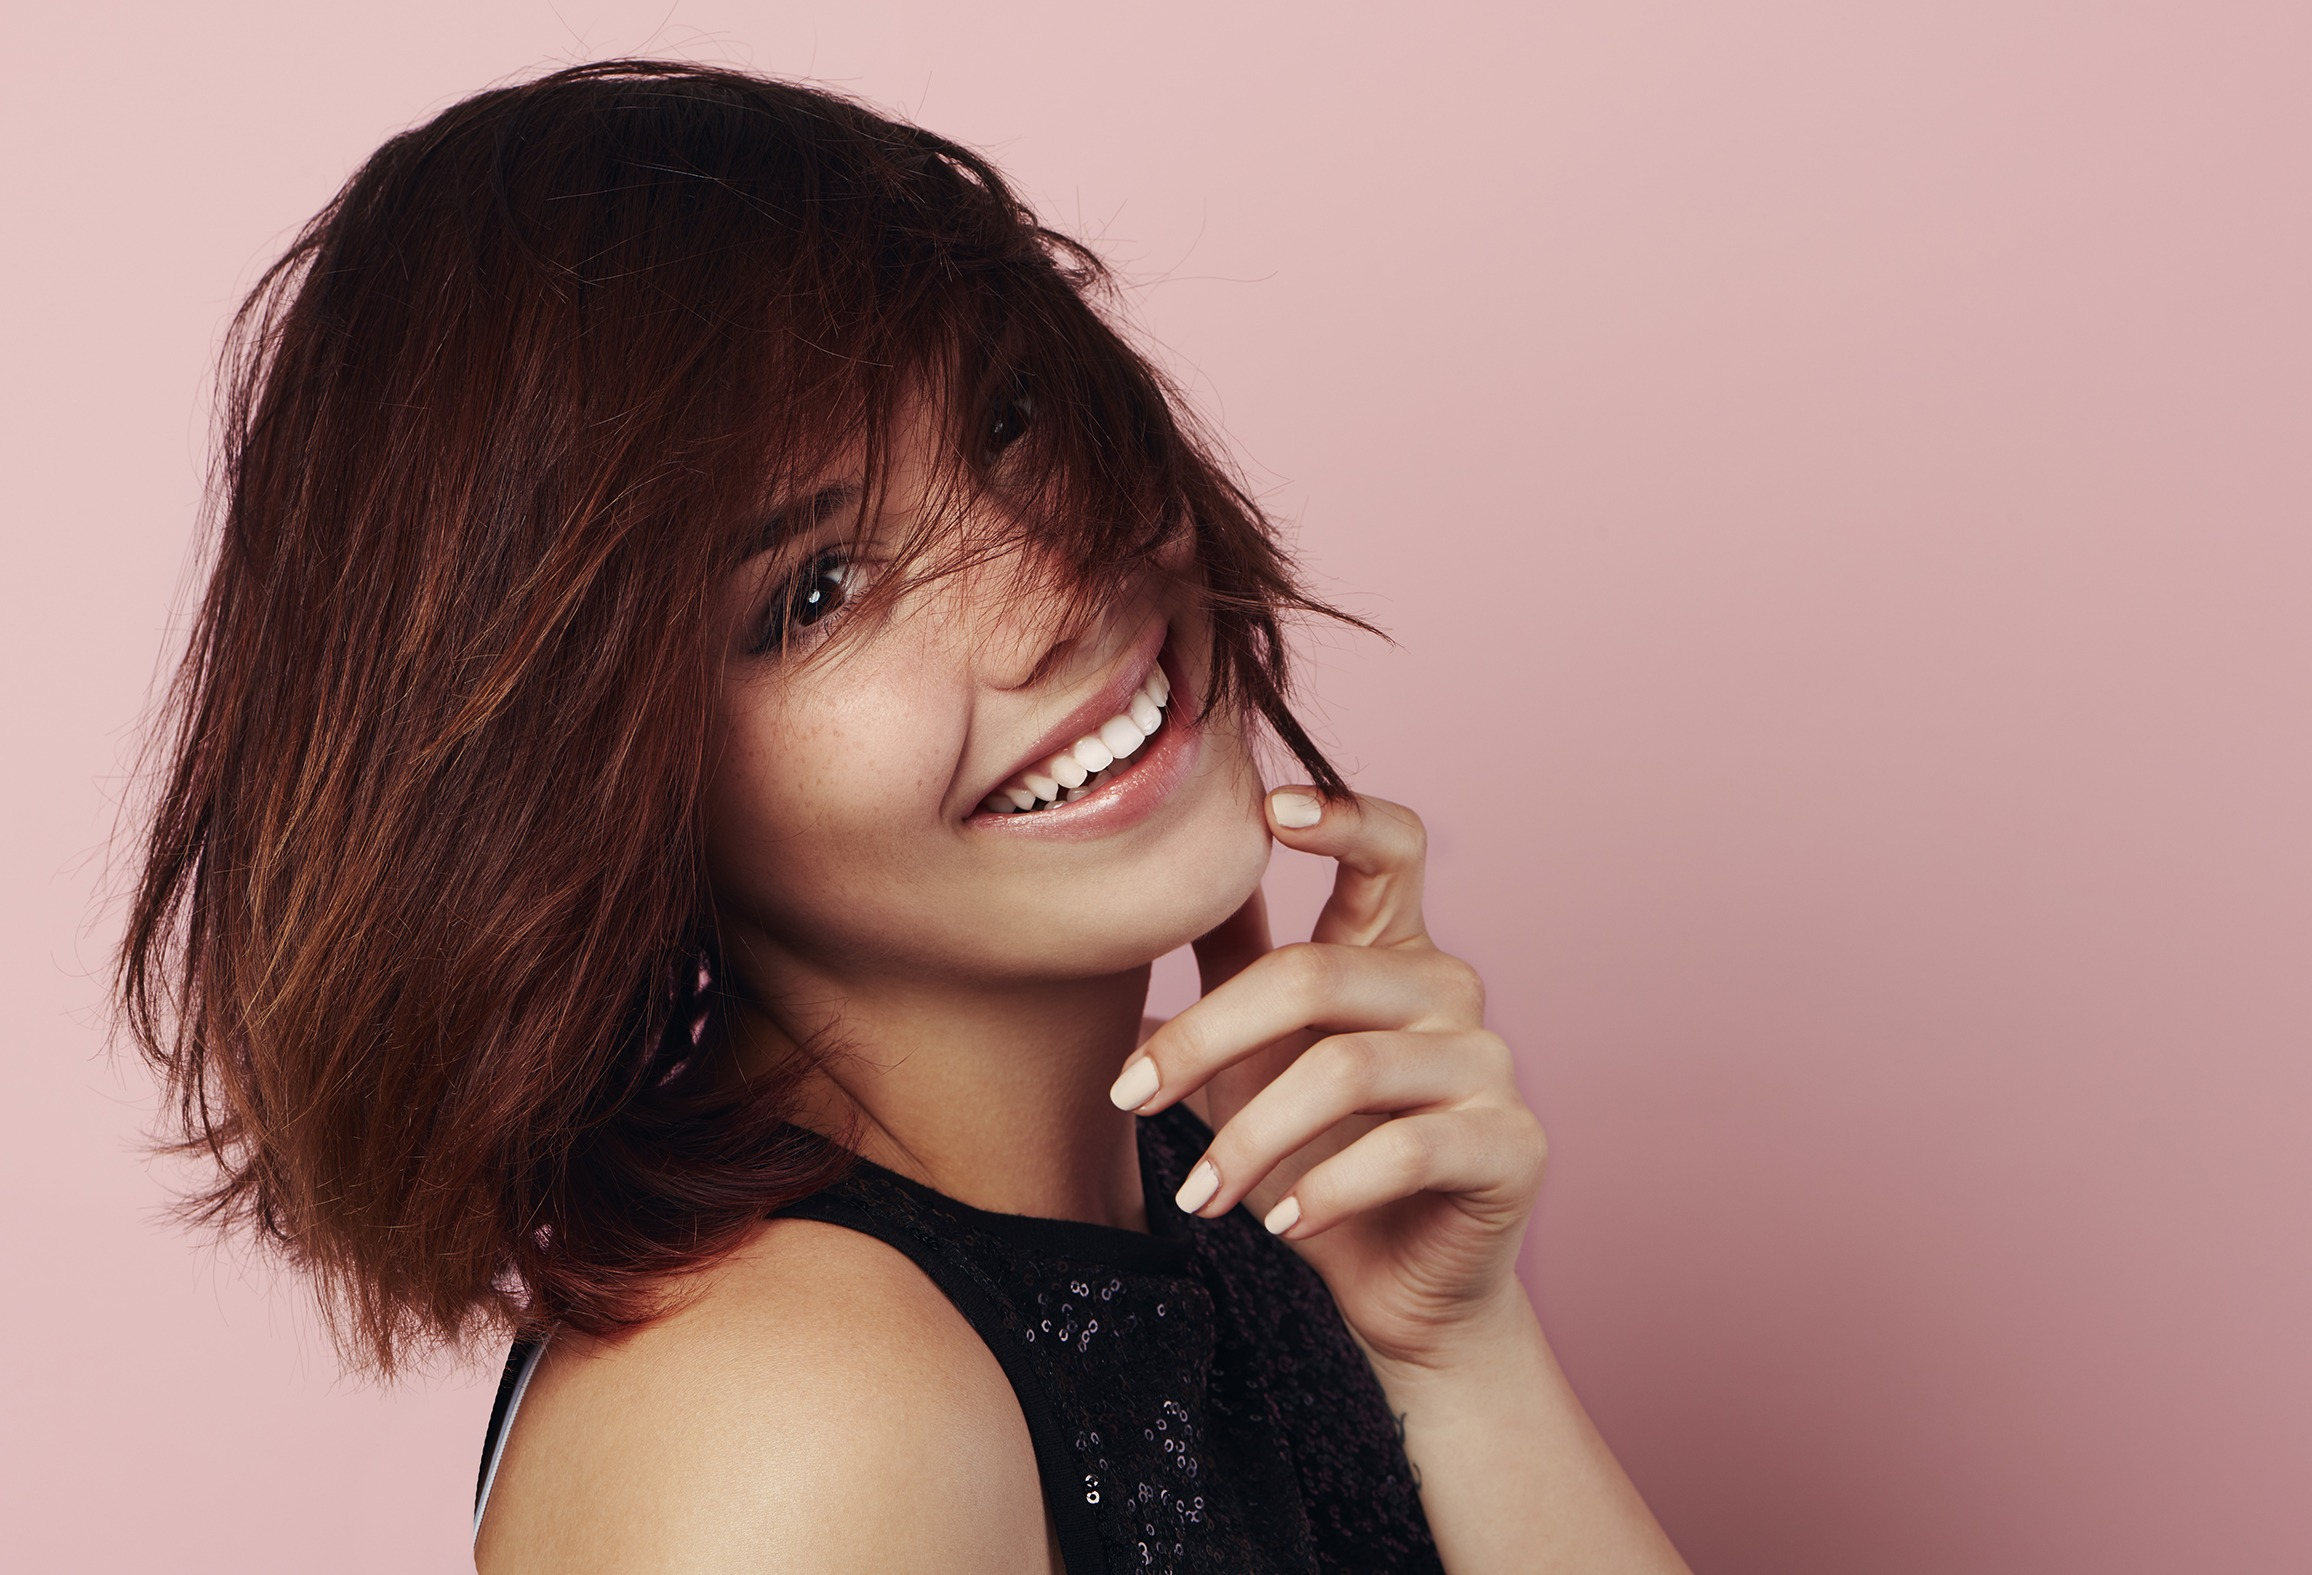 Beauty portrait of smiling female model with windy hair over pin